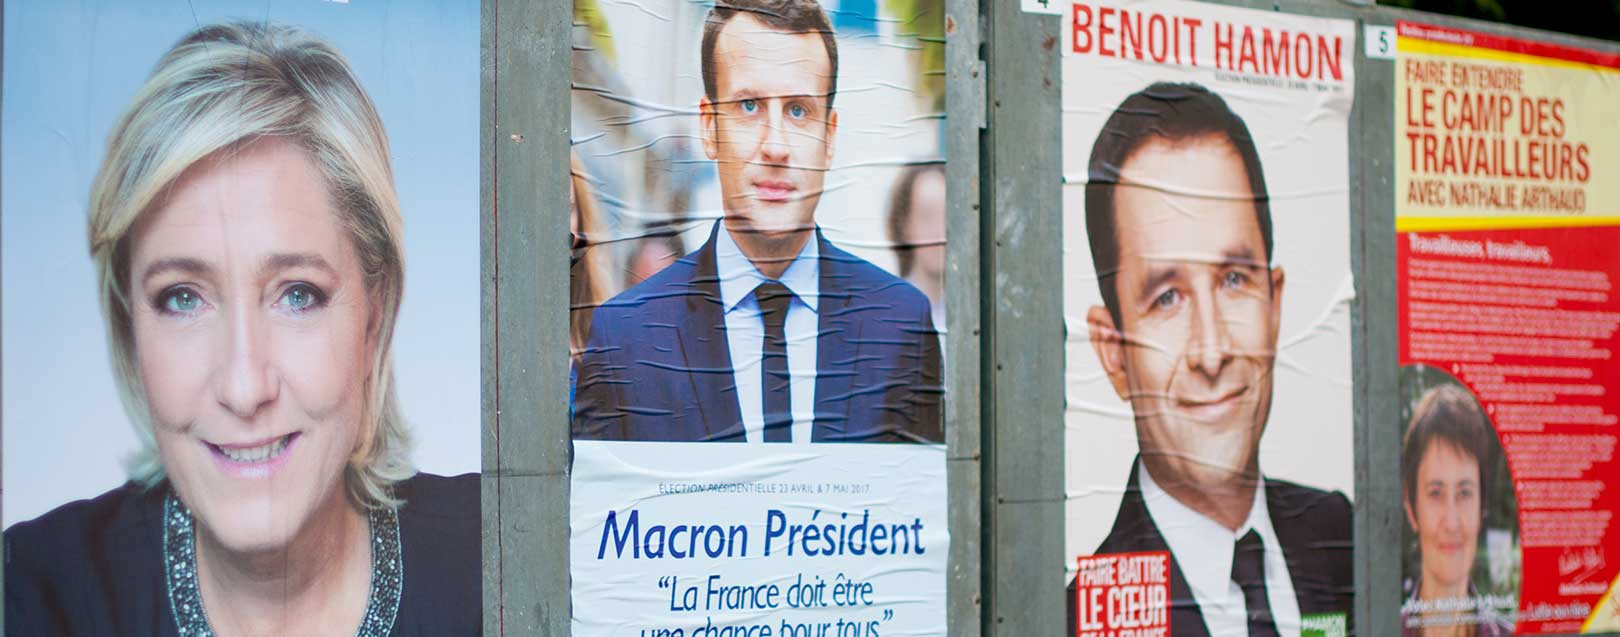 French elections: Macron seems to be cruising to victory